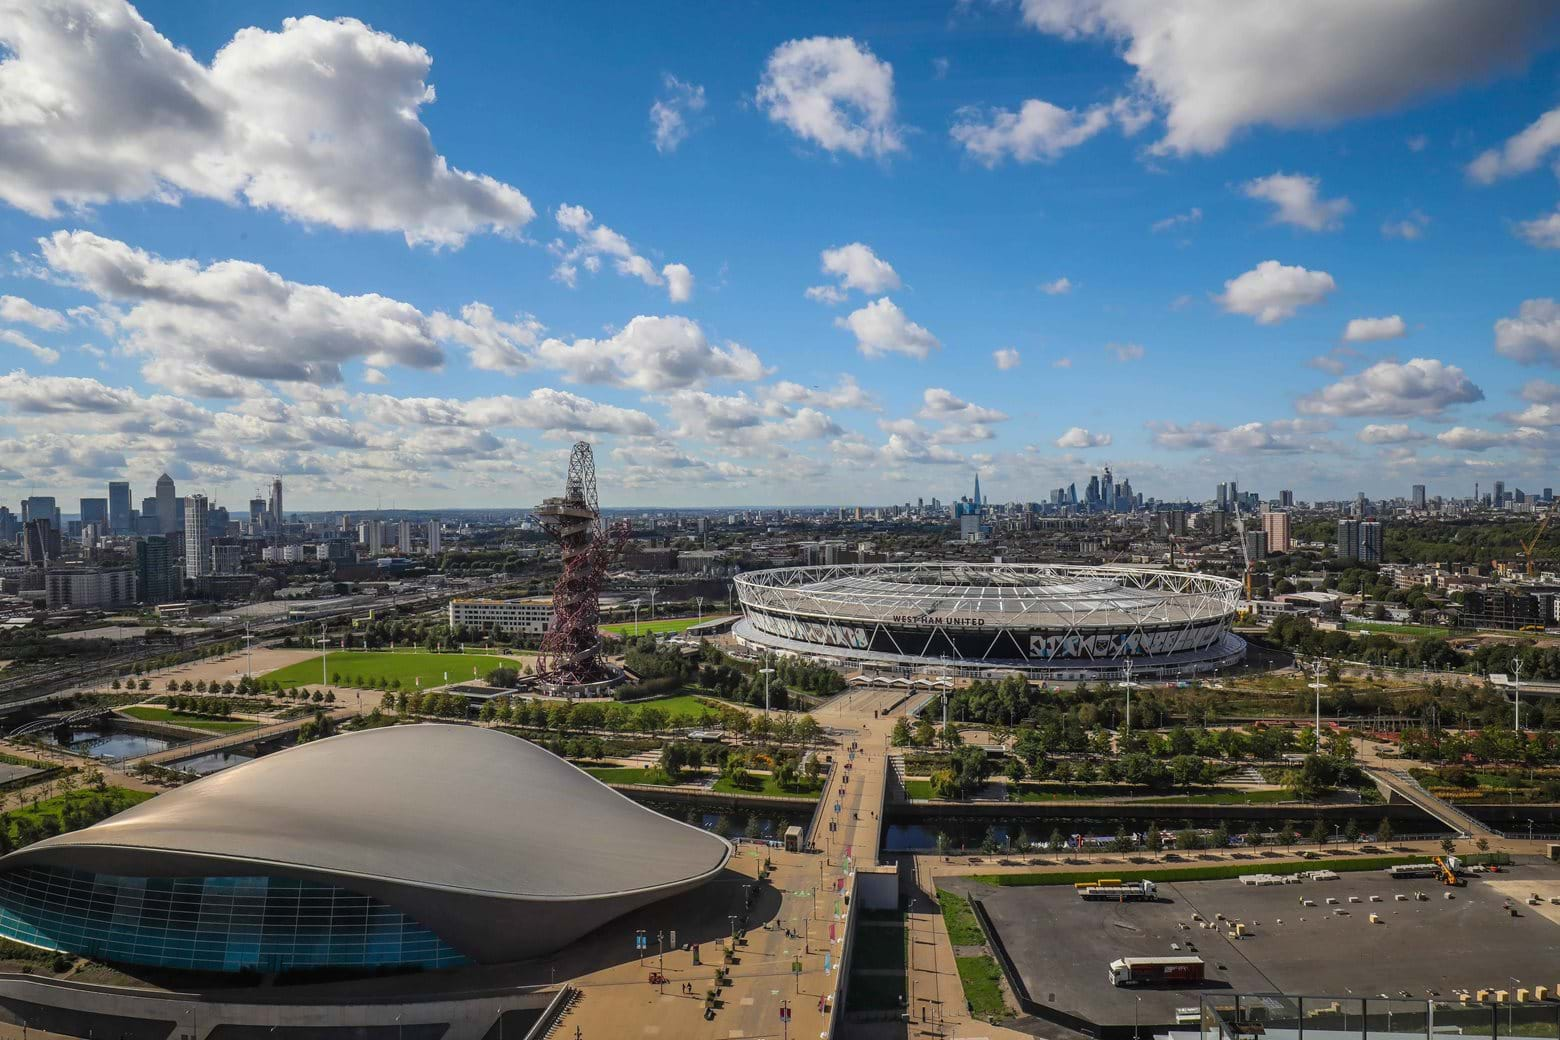 Olympic Park | Greenway - Local area photography